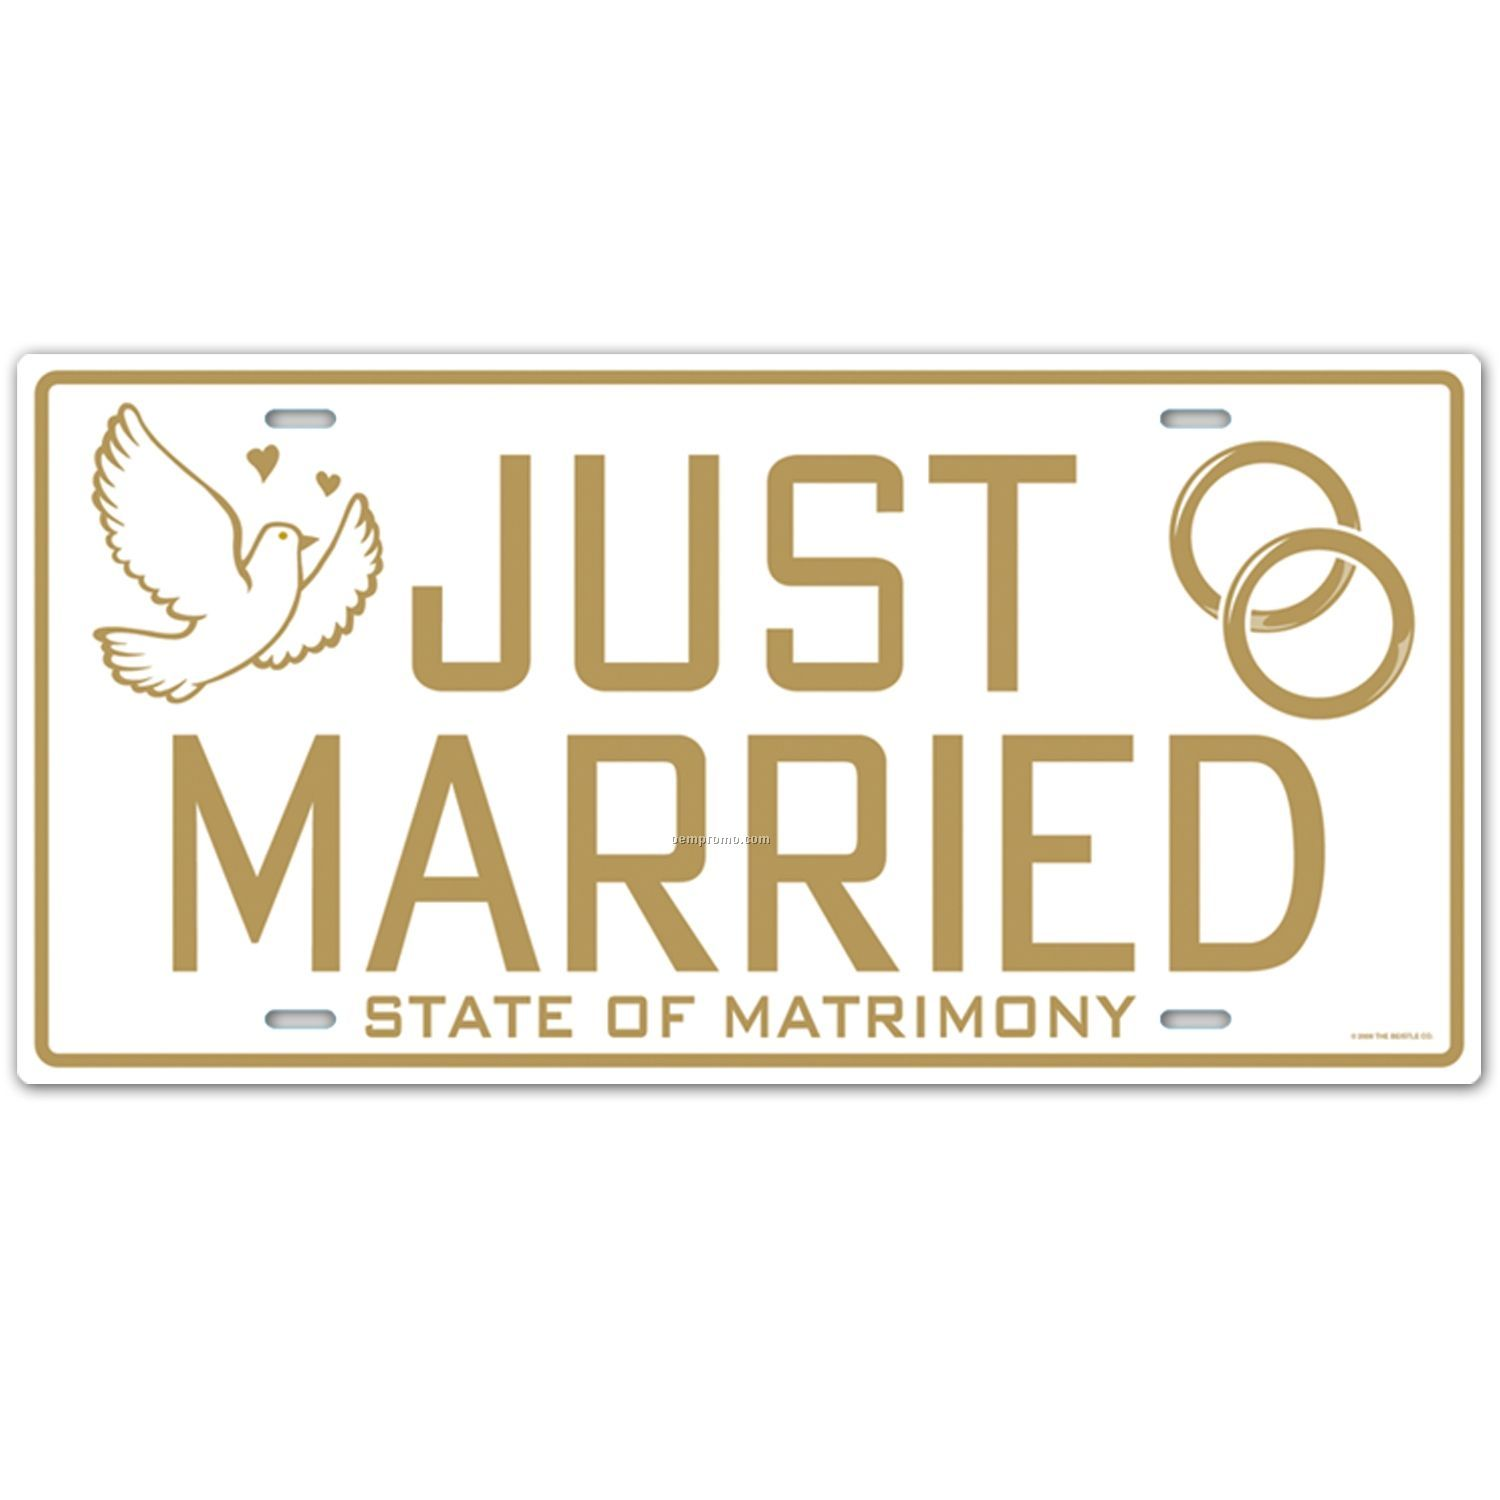 Just Married License Plate CutoutChina Wholesale Just